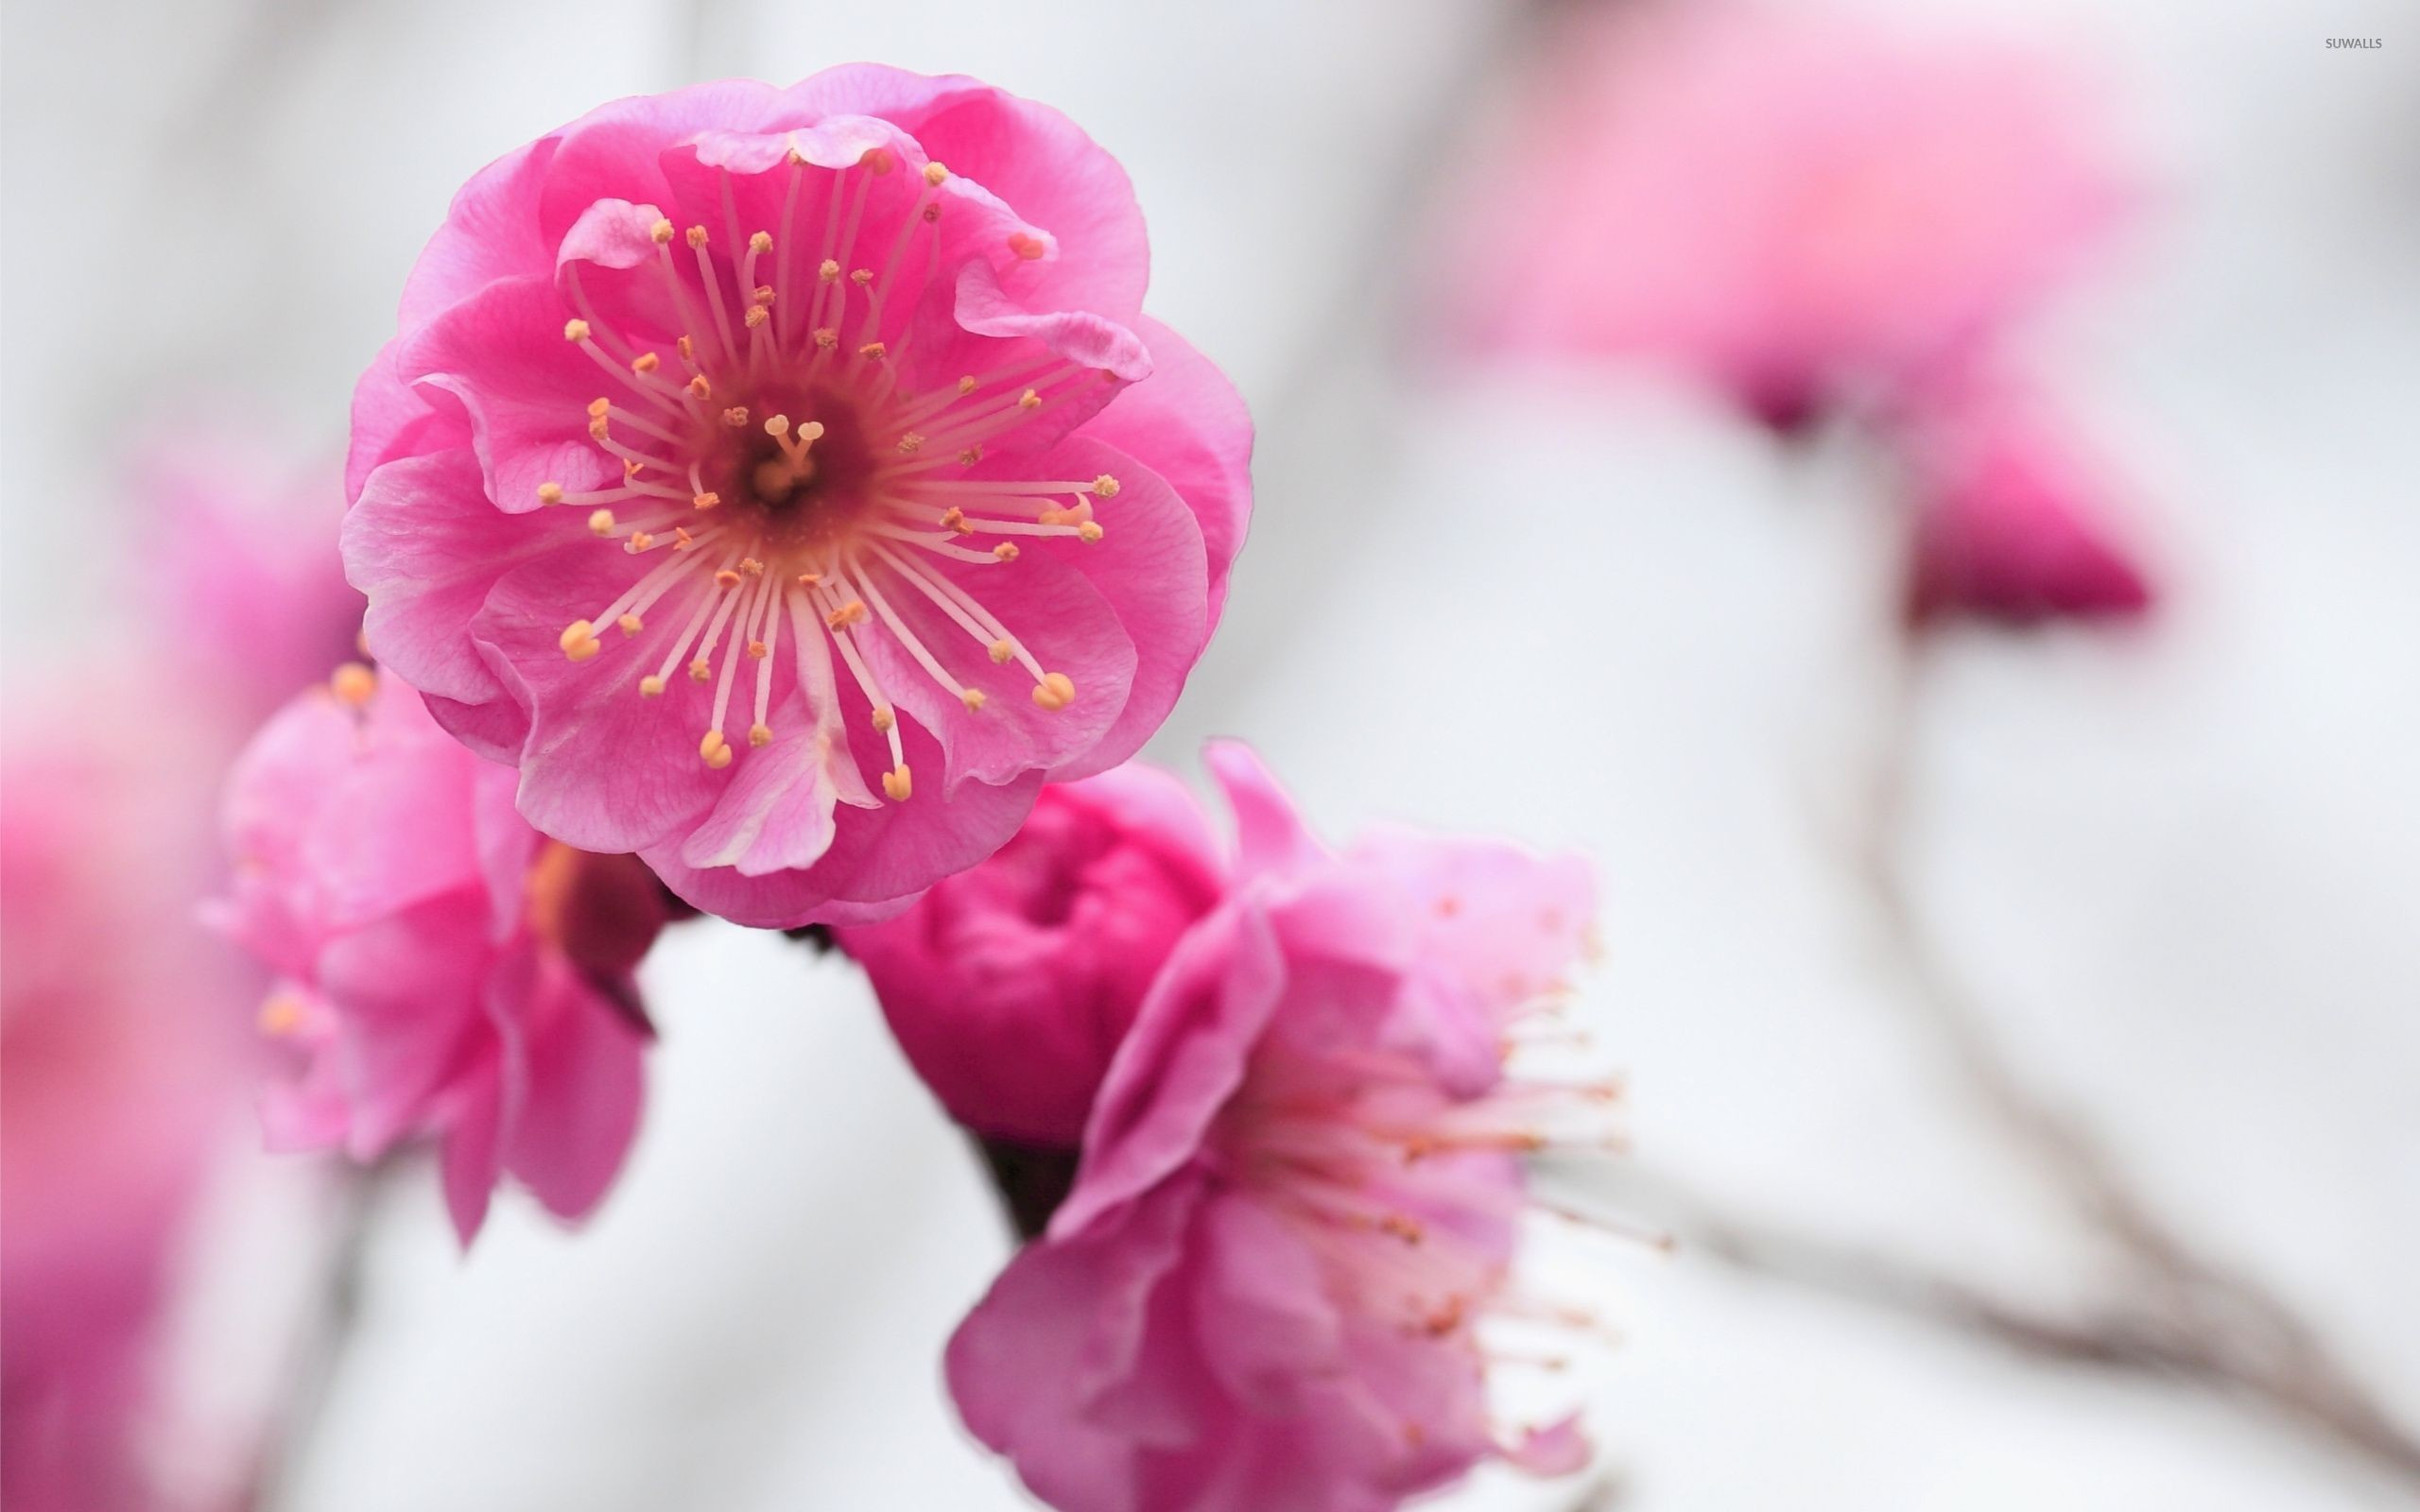 Htc One M8 Wallpaper Hd Pink Cherry Blossom Wallpaper 62 Images